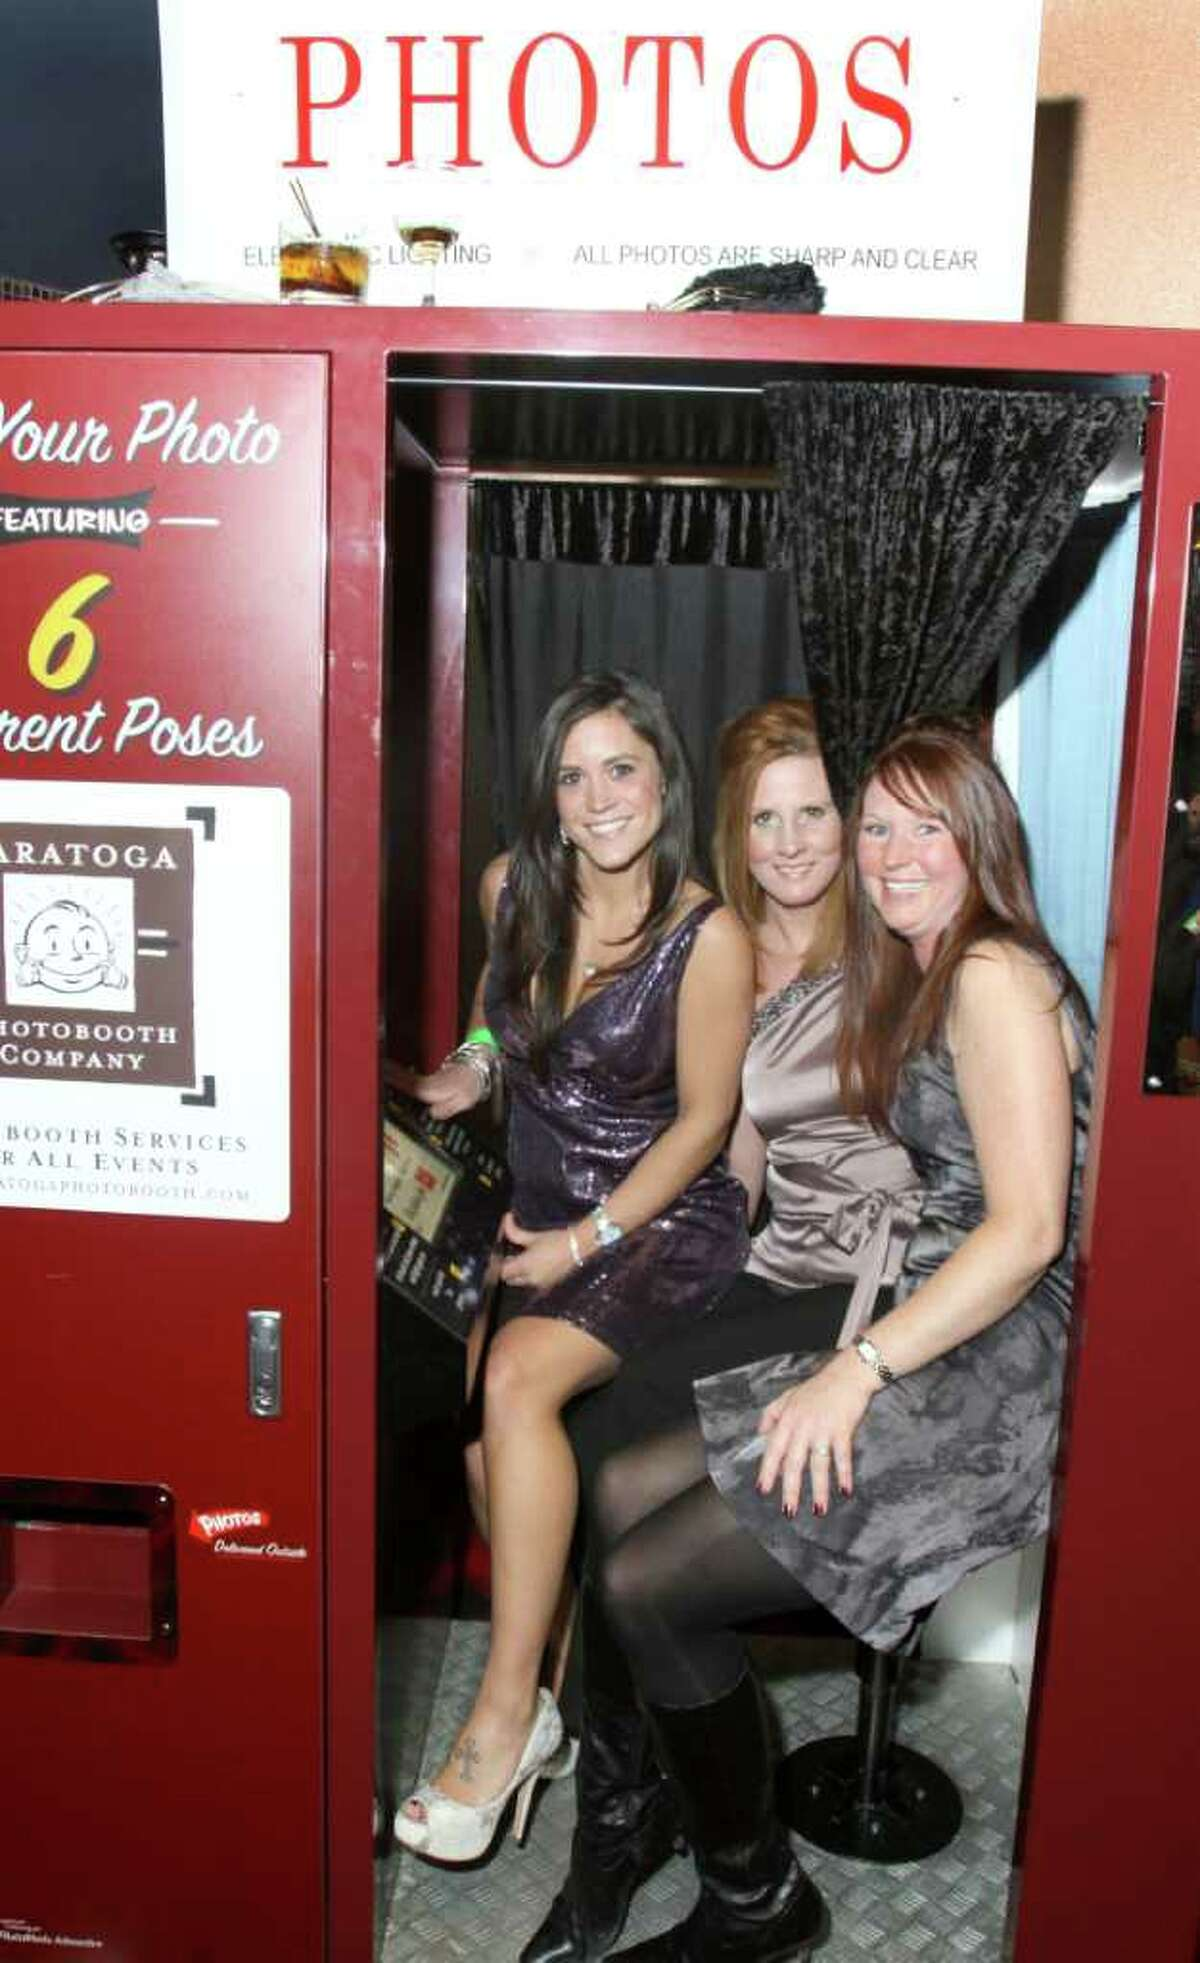 From left: Jennifer Fortune Gras, Melissa Murdock and Michele Auman share the photo booth Jan. 21, 2011 at Vapor Nightclub at the Saratoga Gaming and Raceway during